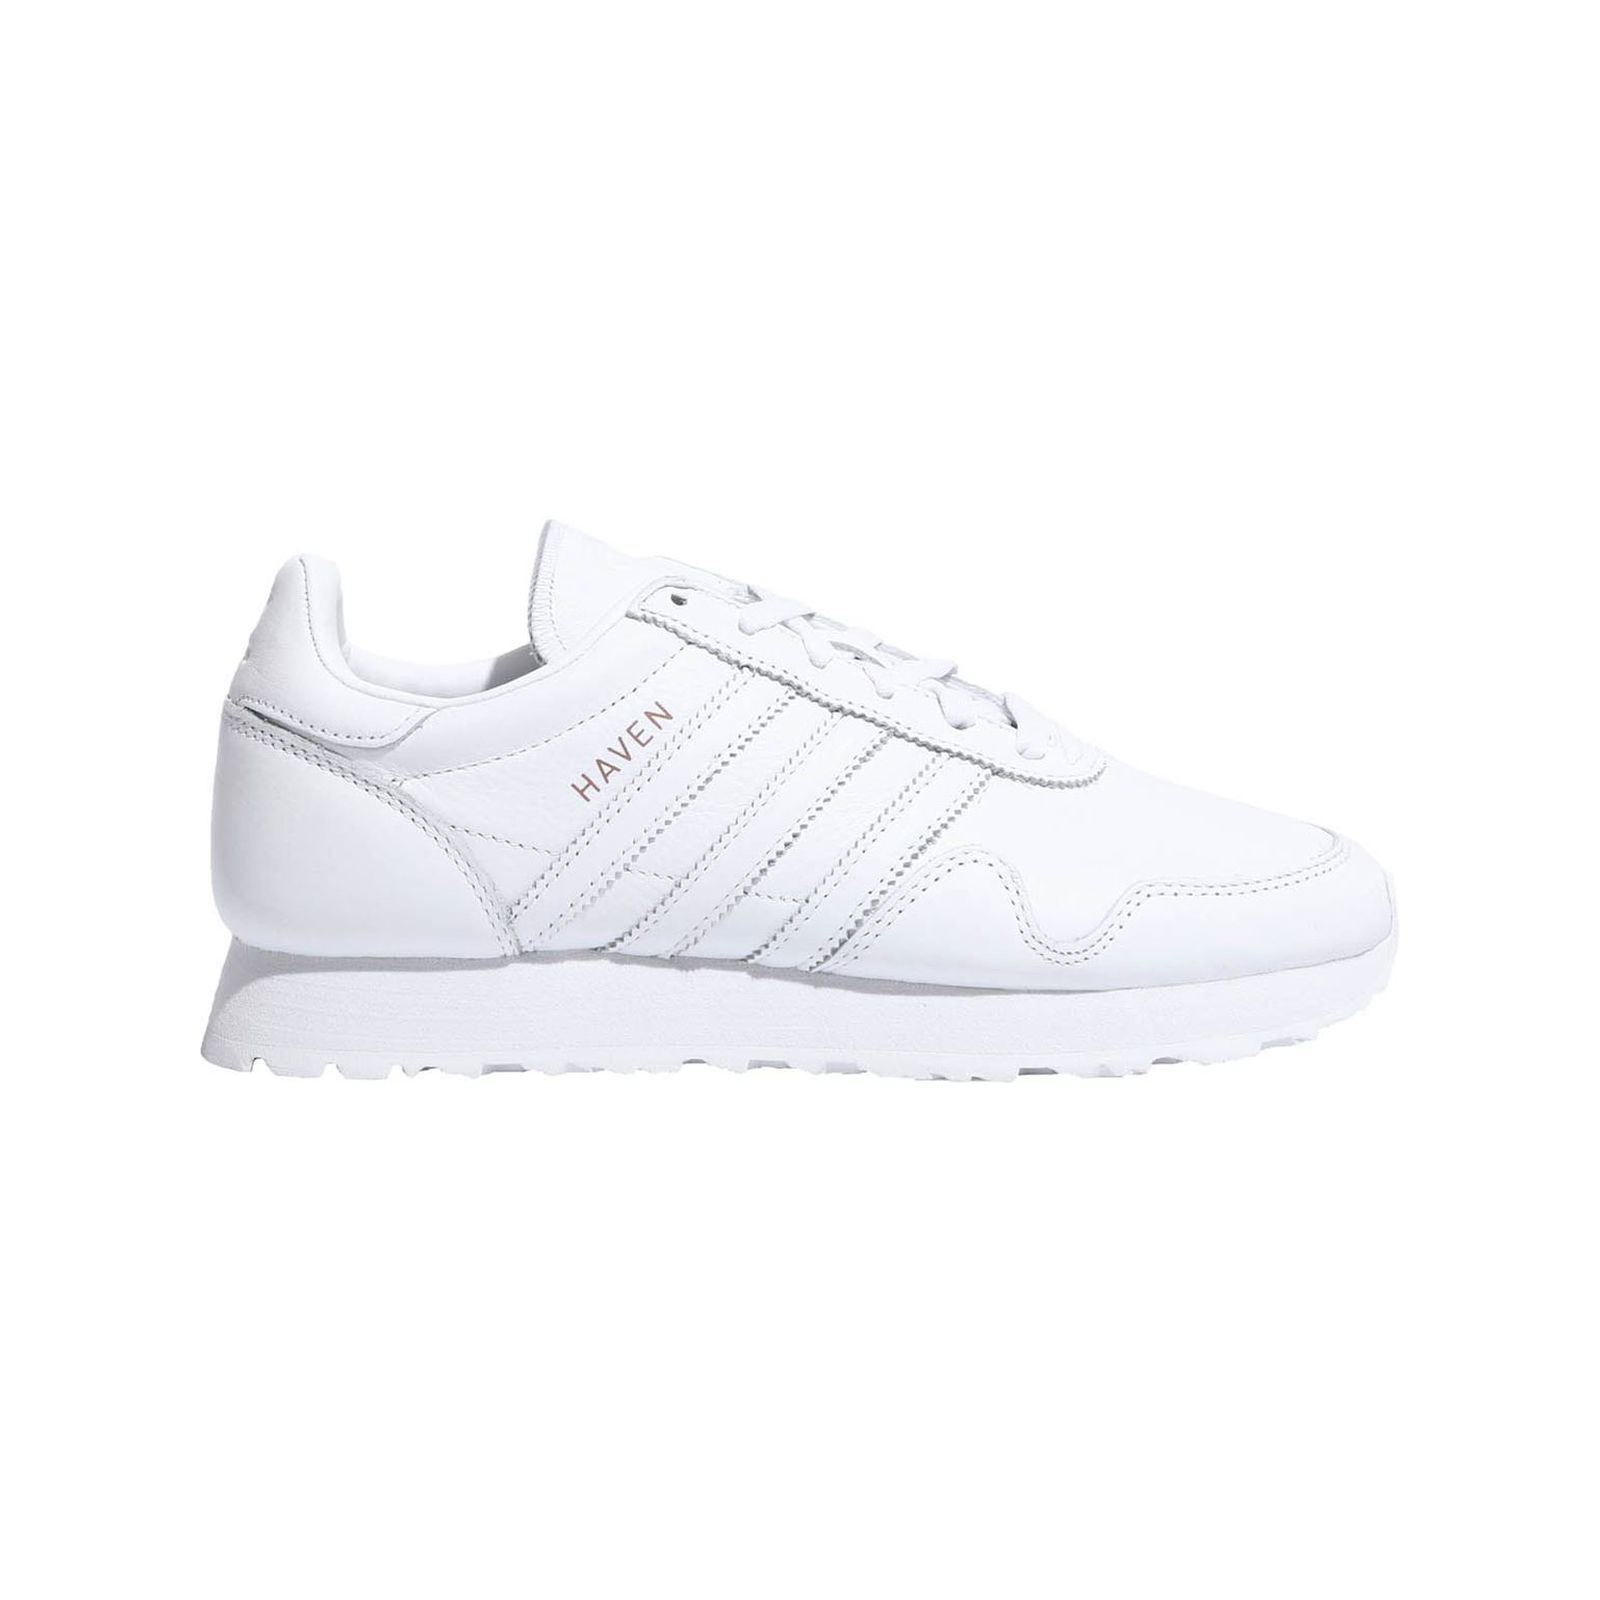 Adidas Originals Haven Sneakers in pelle bianco